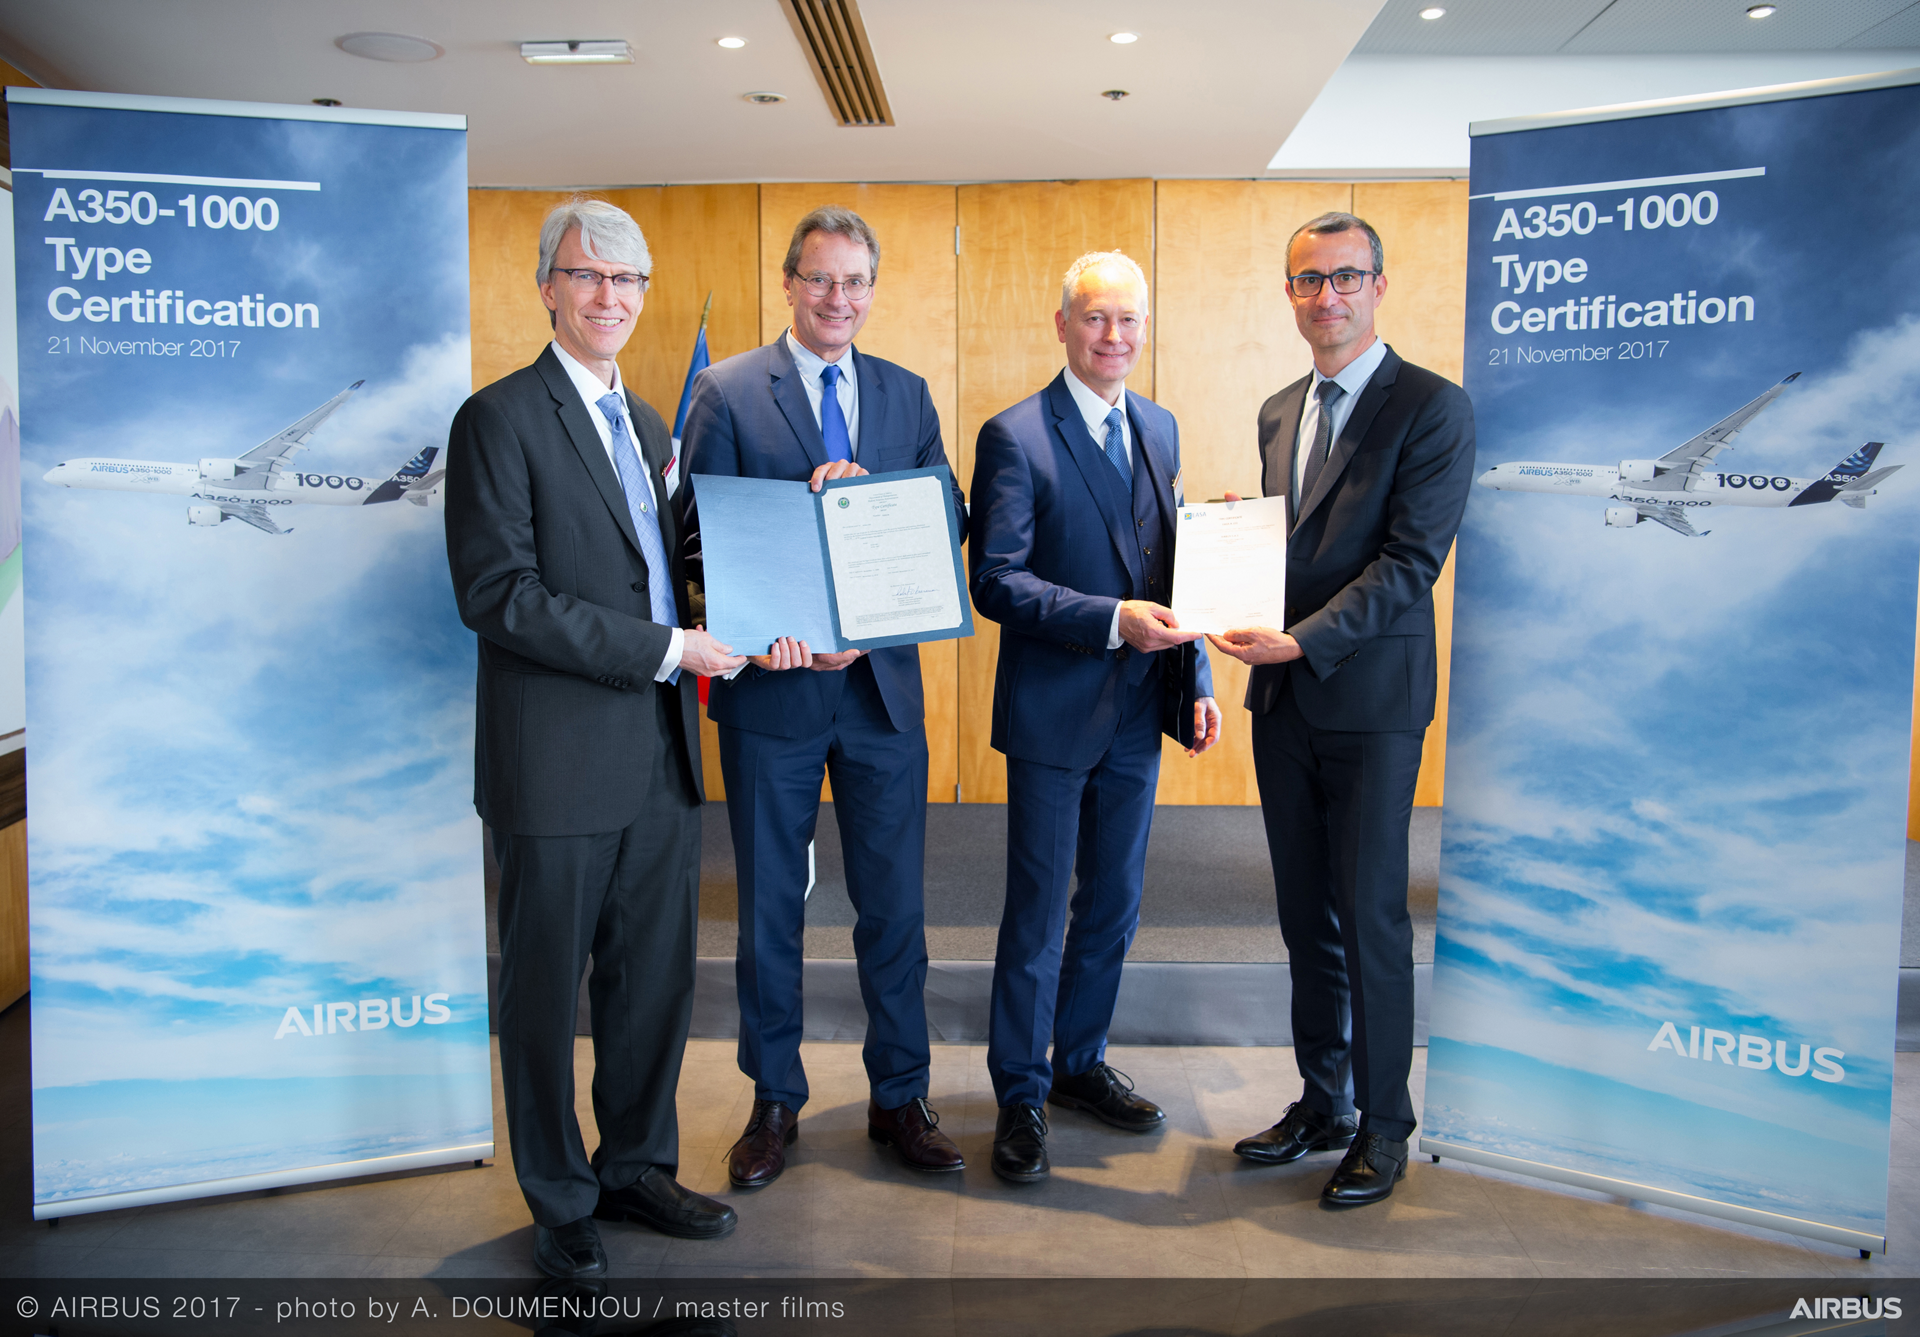 The largest variant of its A350 receiving type certification from the European Aviation Safety Agency (EASA)